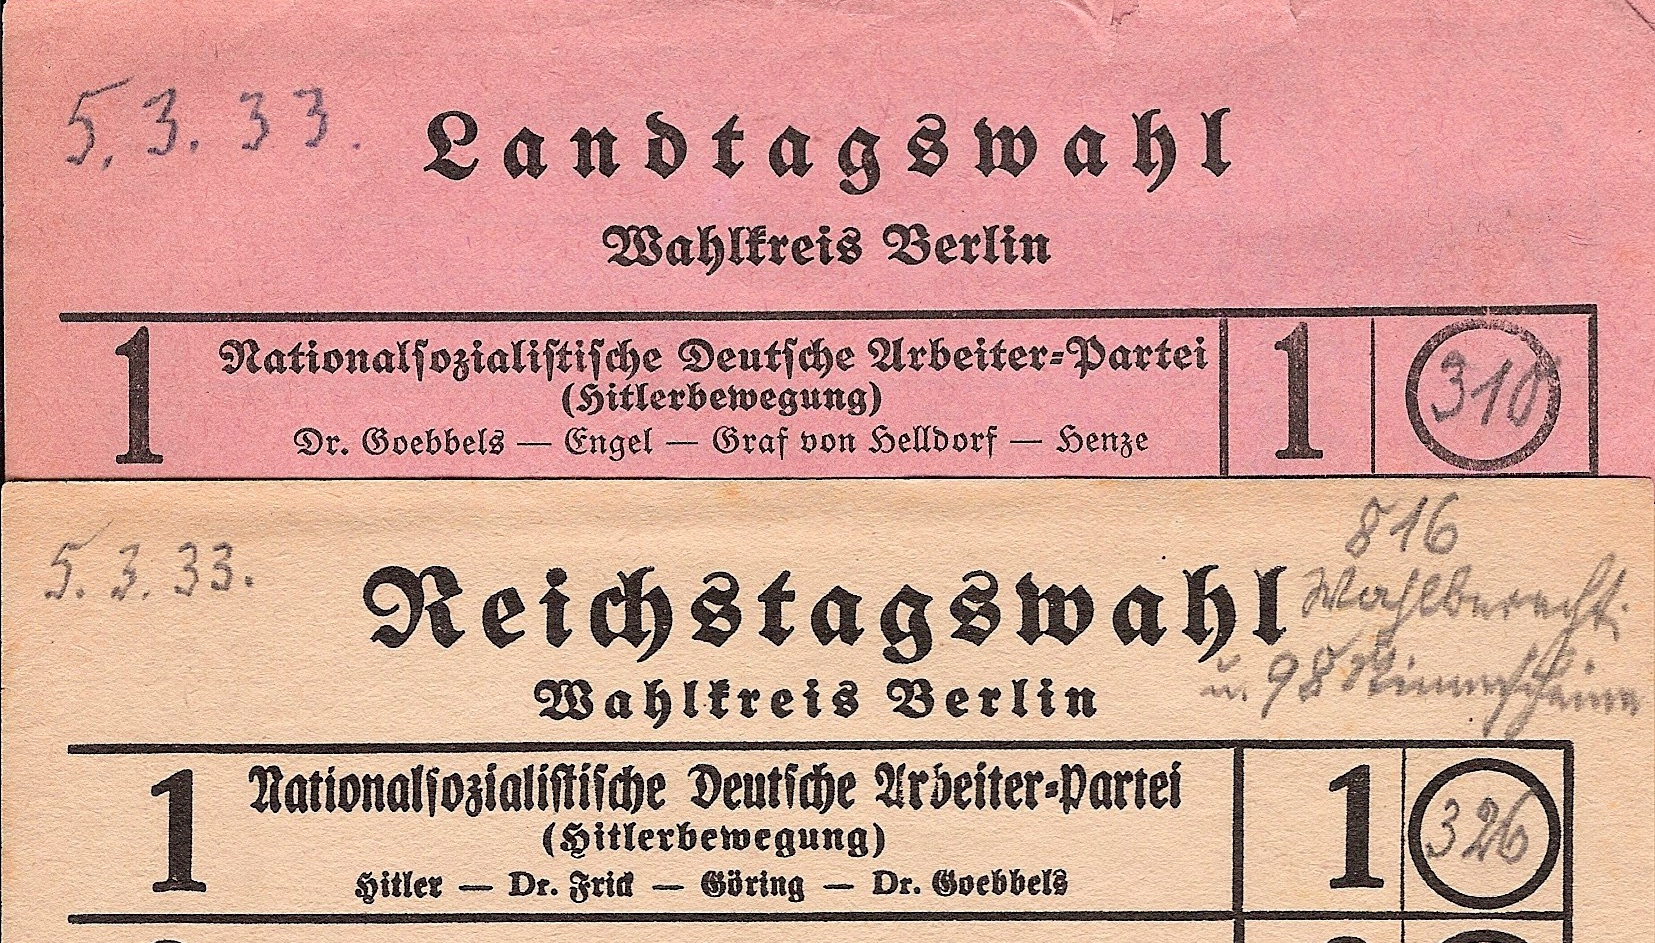 Tops of tally sheets for the Reichstag (national parliament) and the Landtag (provincial diet) elections of March 5, 1933.  The National Socialist Party was first on the list, with Adolf Hitler as the first candidate of his party for the Reichstag, and Jo